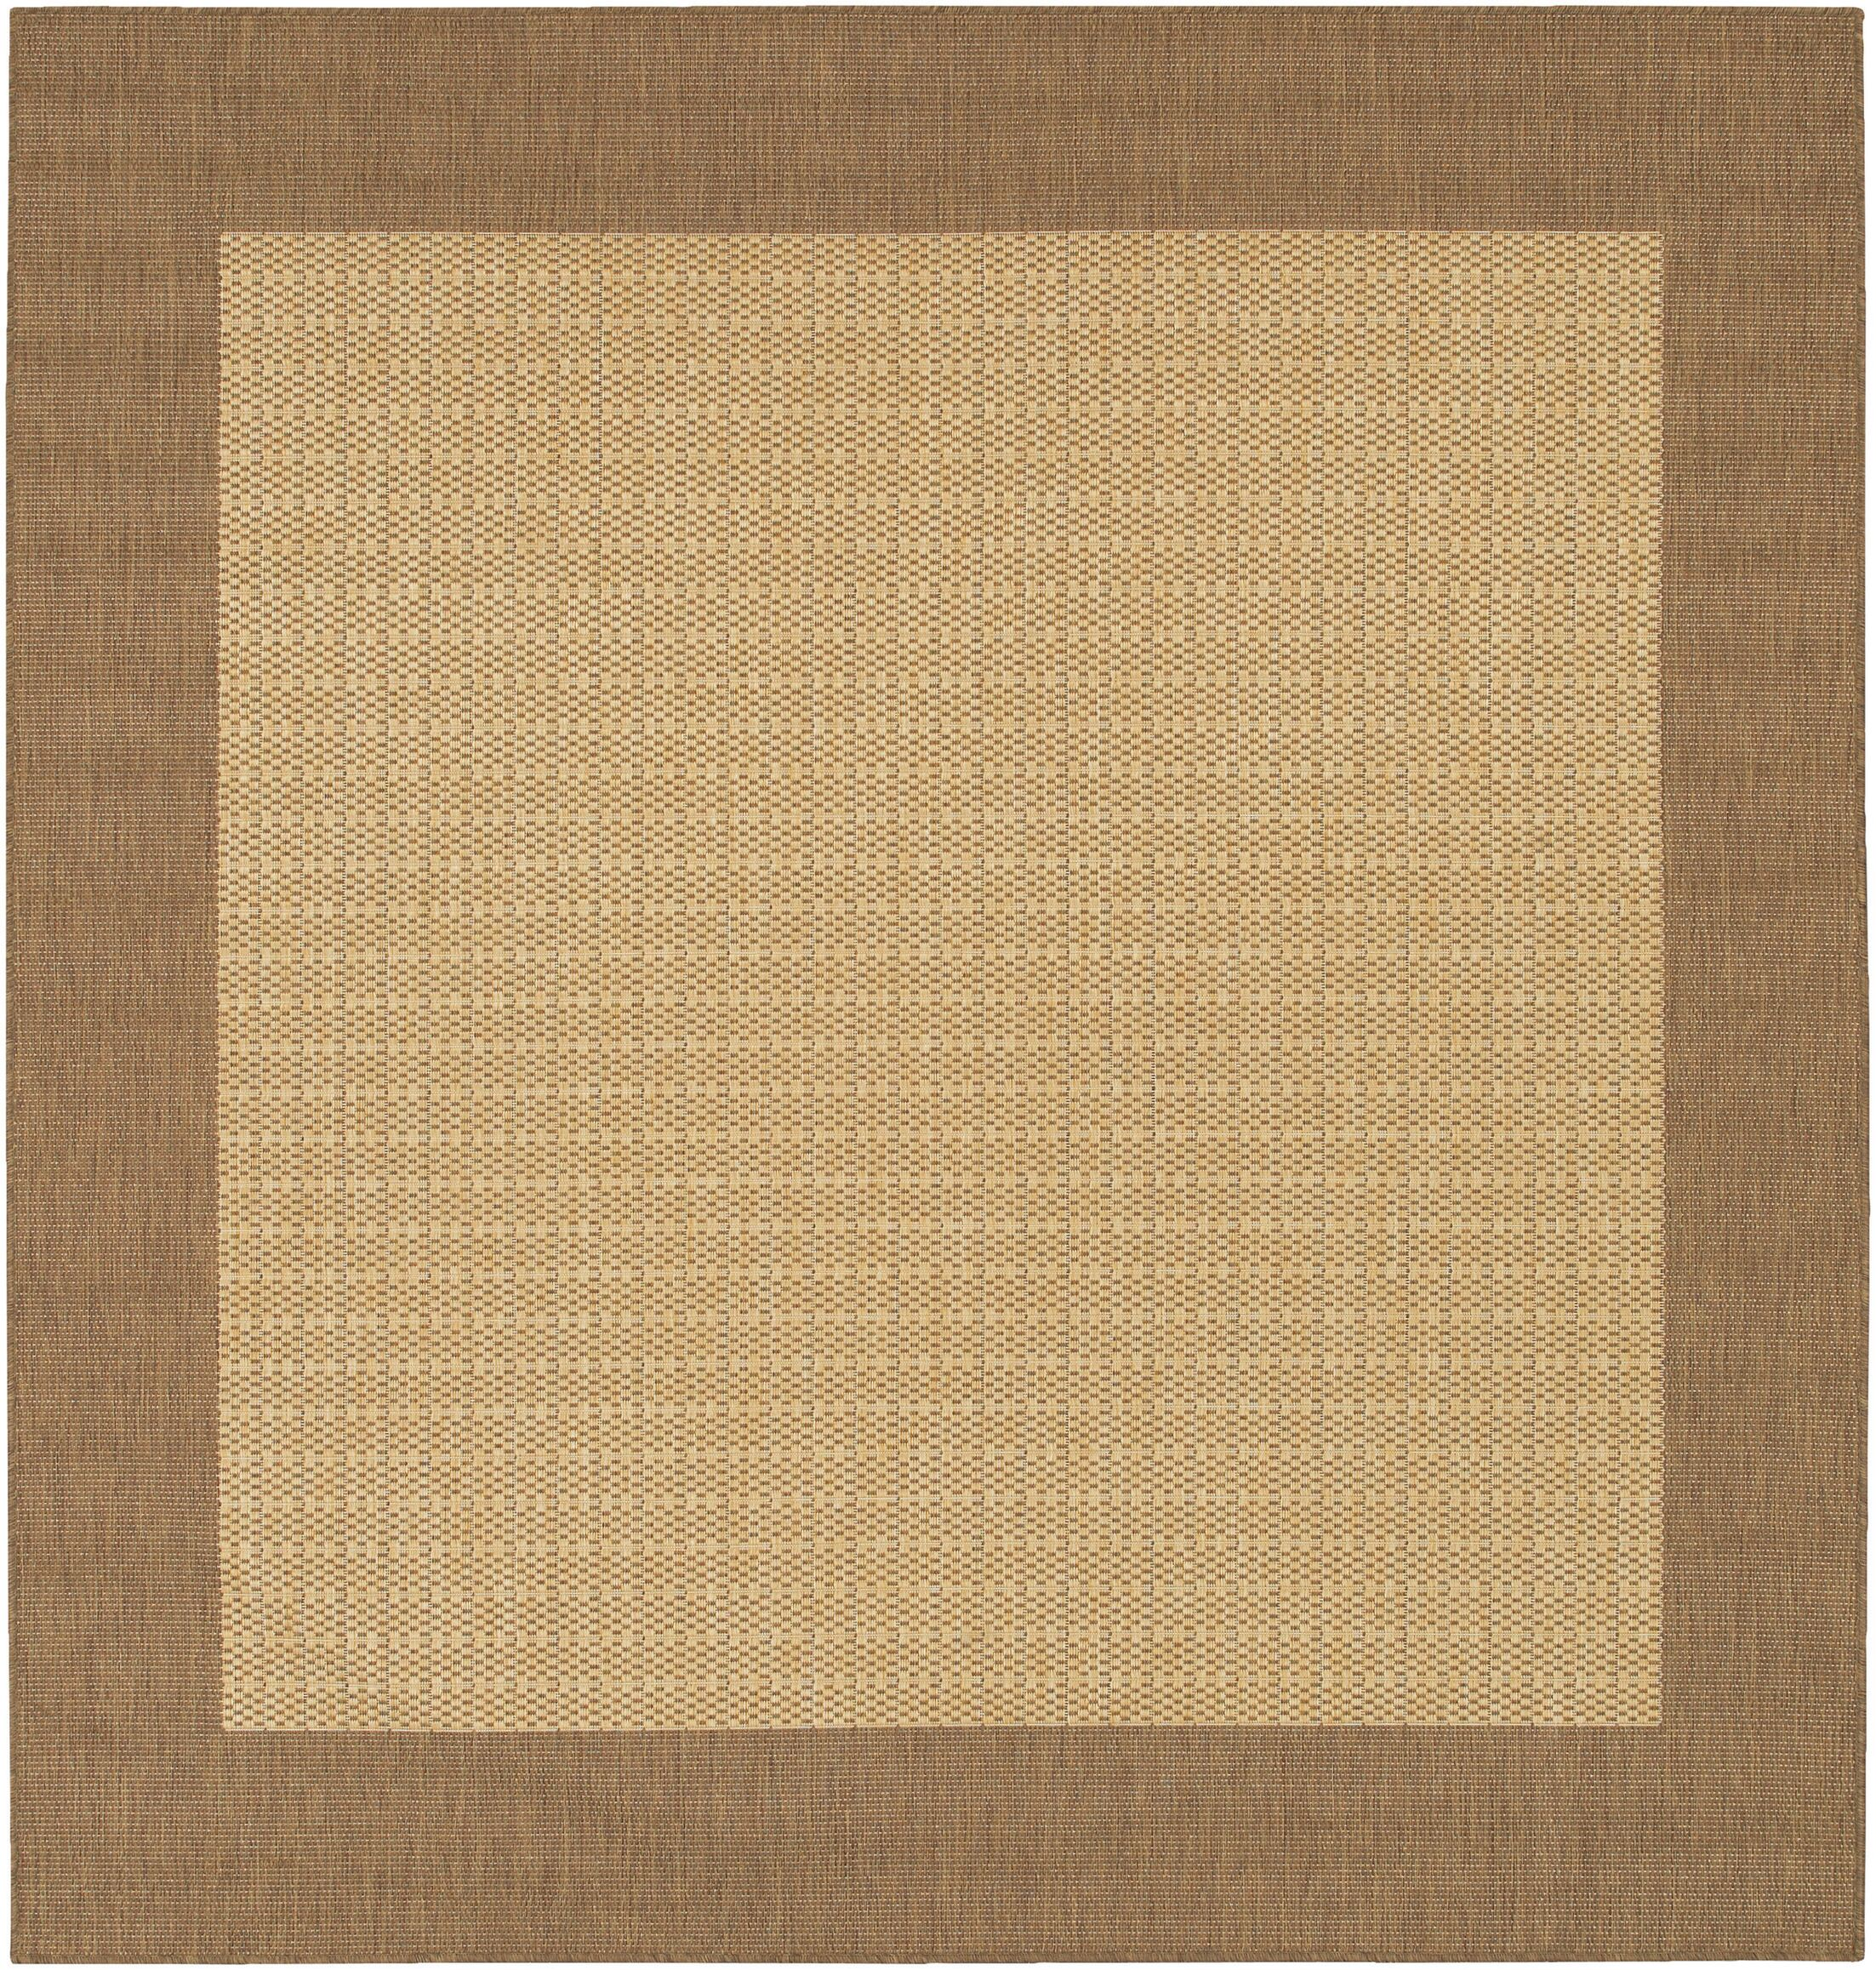 Celia Cocoa/Natural Indoor/Outdoor Area Rug Rug Size: Square 7'6